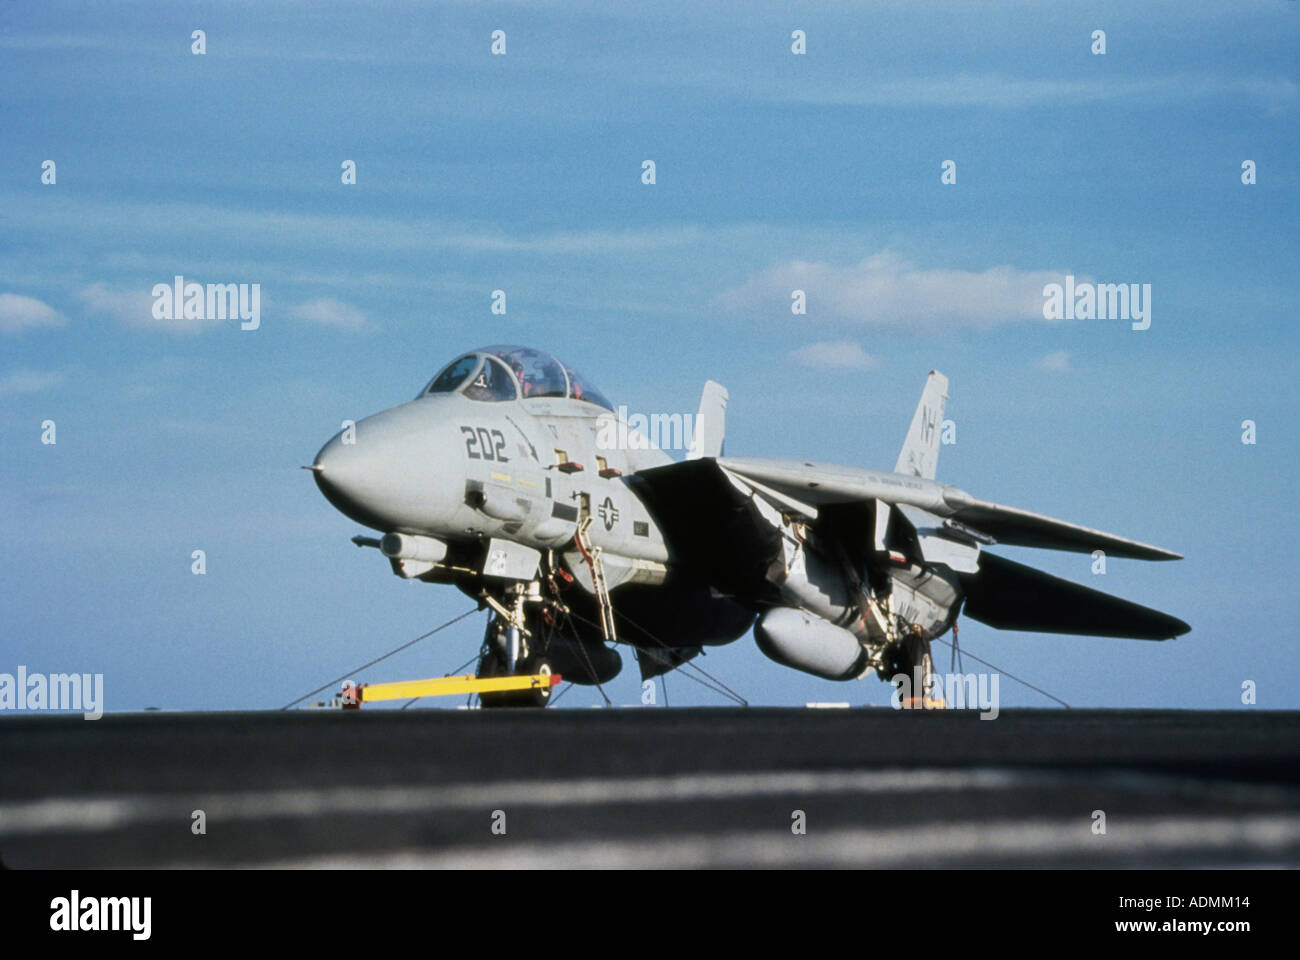 F-14A Tomcat aboard the flight deck of the USS Abraham Lincoln - Stock Image